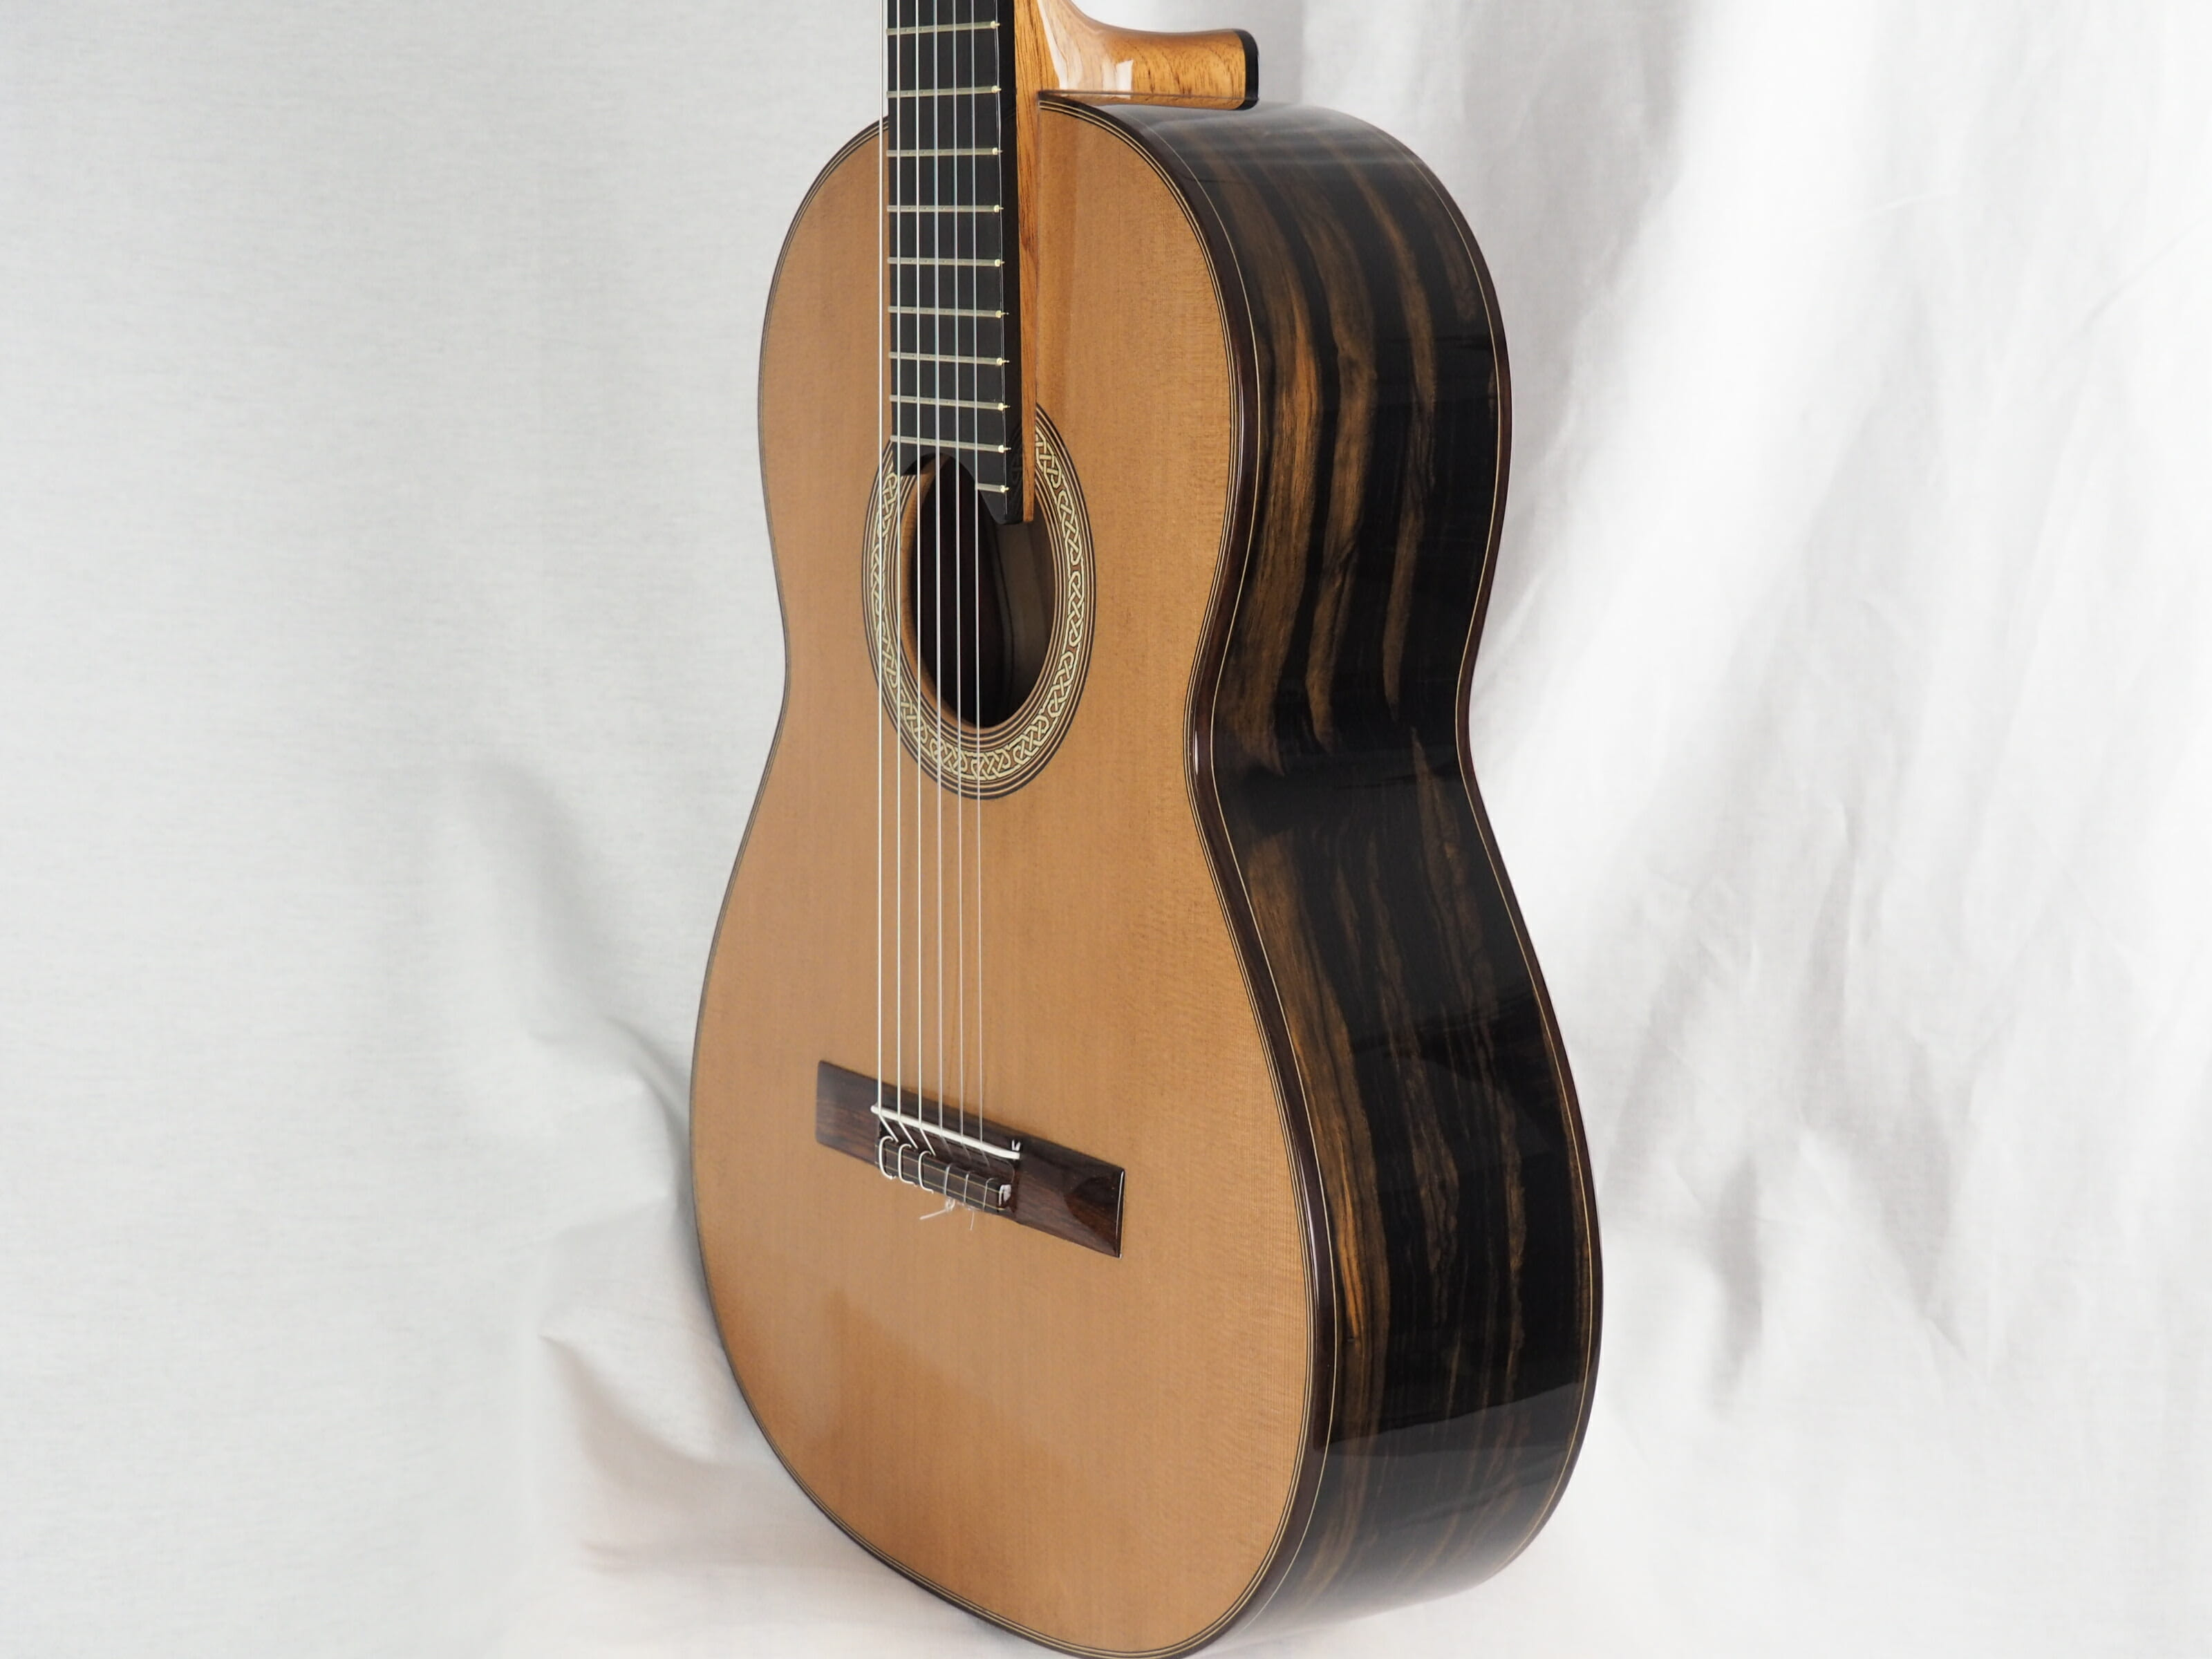 Michael O'Leary luthier guitare classique 19OLE237-08Michael O'Leary luthier guitare classique 19OLE237-08